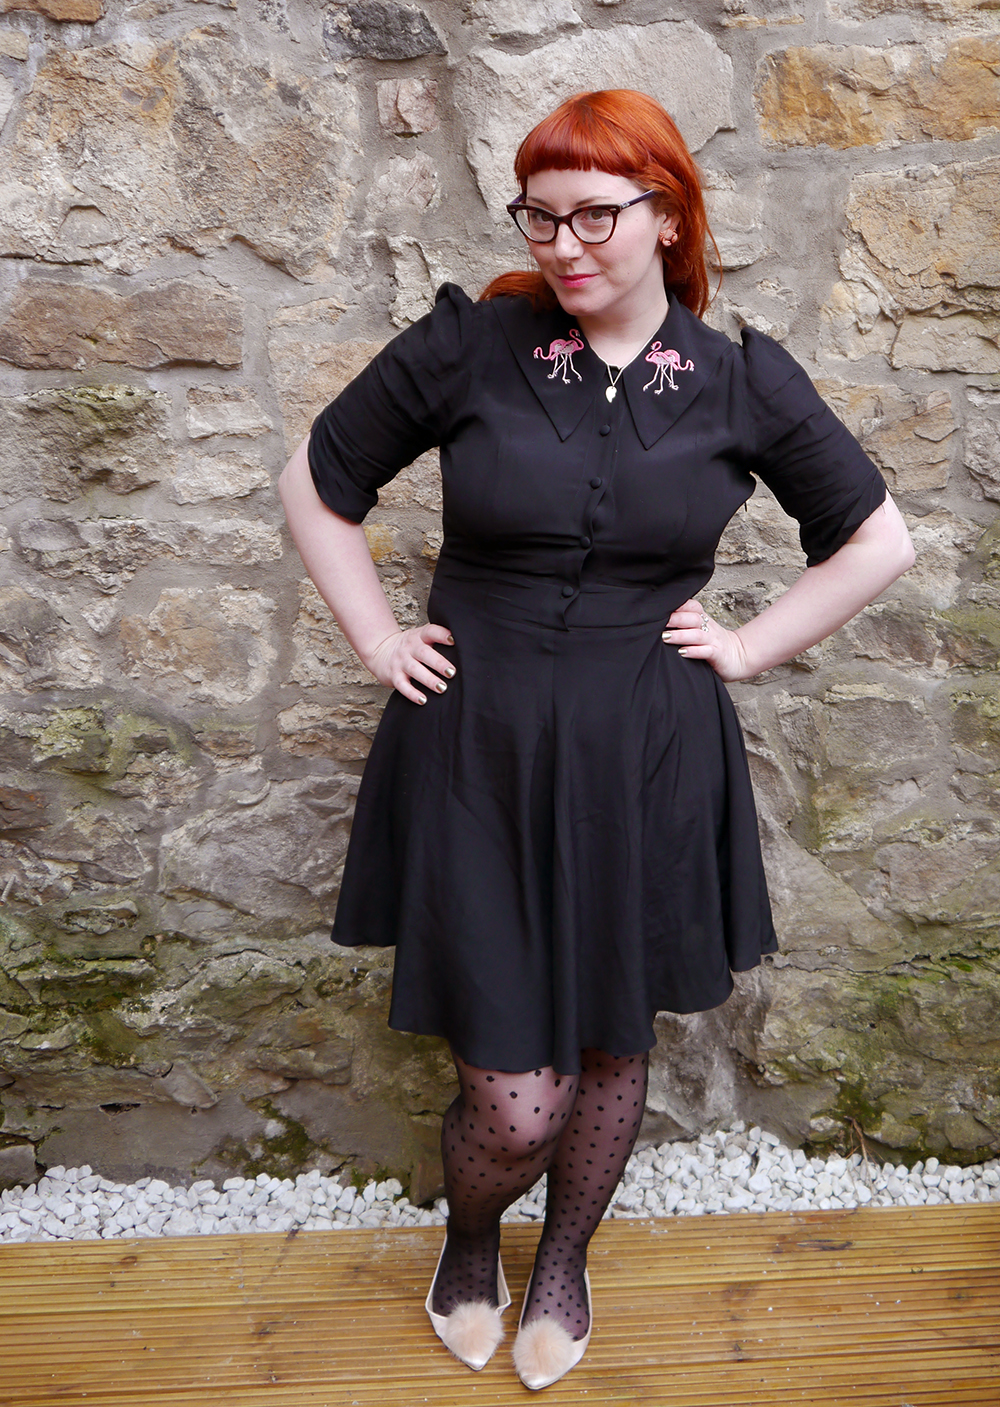 Edinburgh, Scottish bloggers, Metropolitain Fashion Show, Blogger awards, Coco Fennel flamingo dress, Best Witches necklace from Cheap Frills, ASOS pink pom pom shoes, polka dot tights, red head, ginger hair